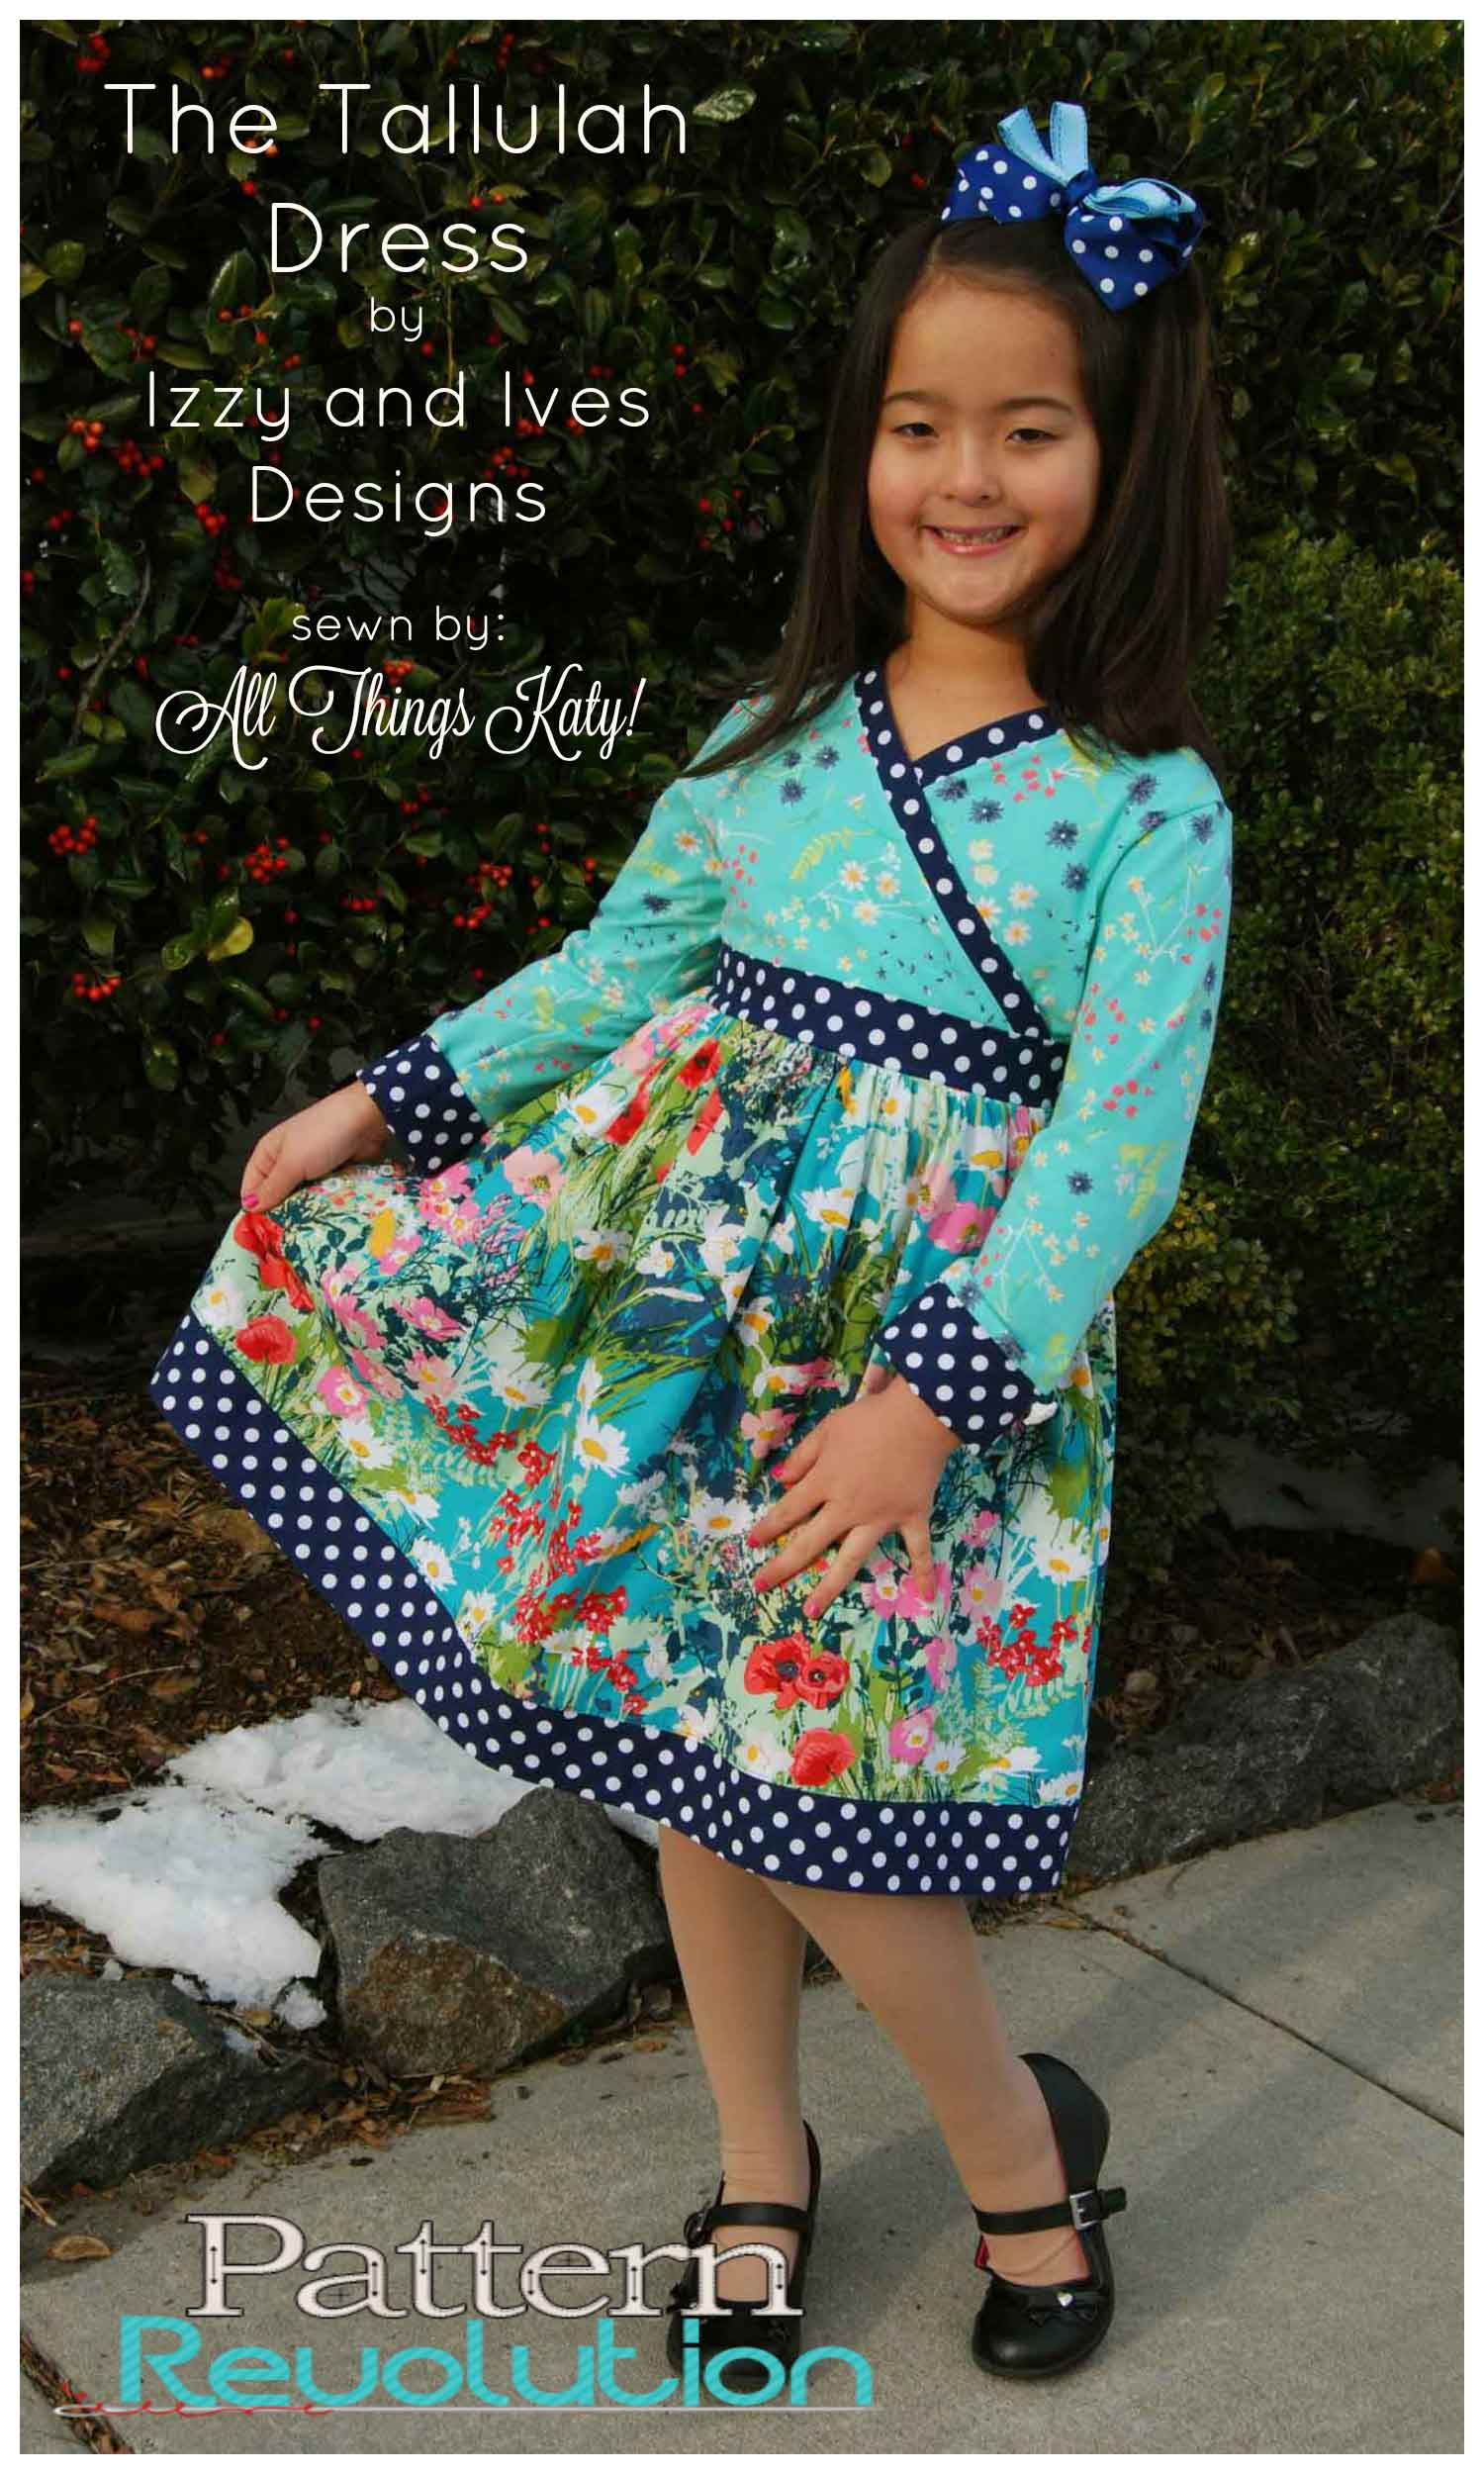 Heather's Talulah Dress from Izzy&Ivy Designs